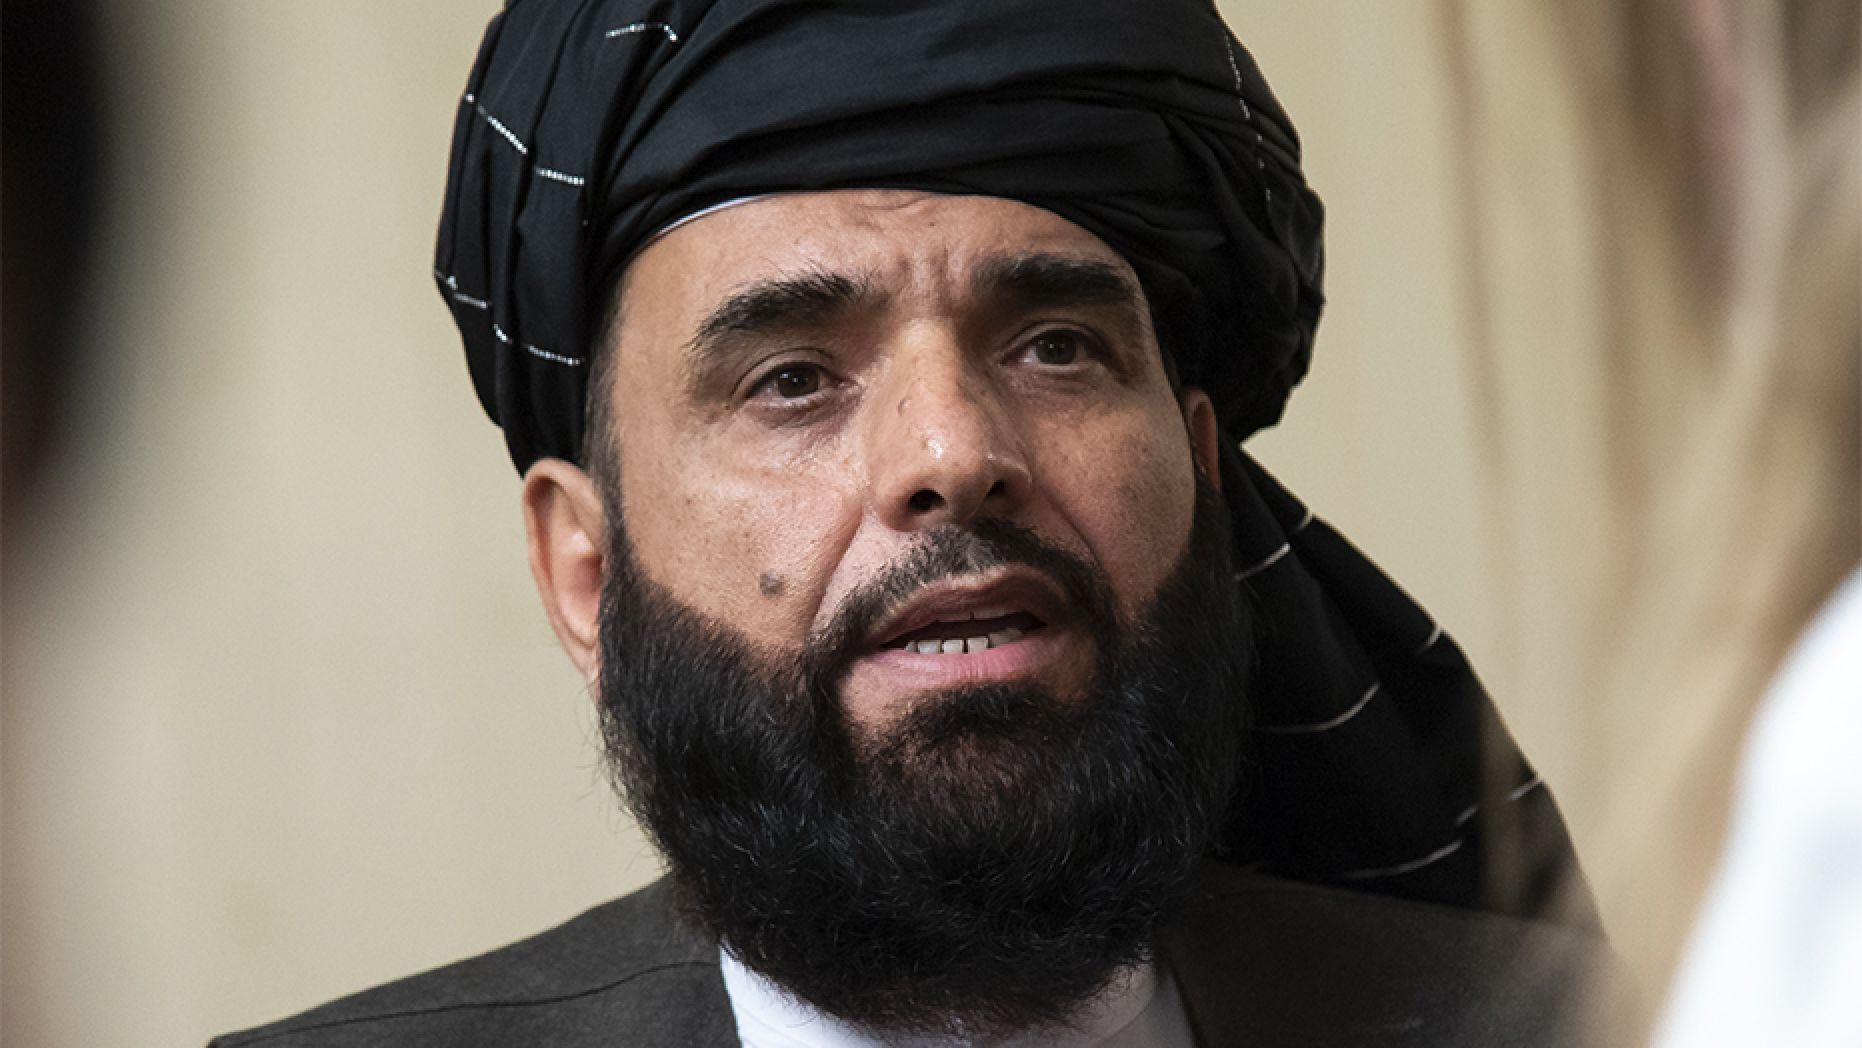 In this 2019 file photo, Suhail Shaheen, spokesman for the Taliban's political office in Doha, speaks to the media in Moscow, Russia.